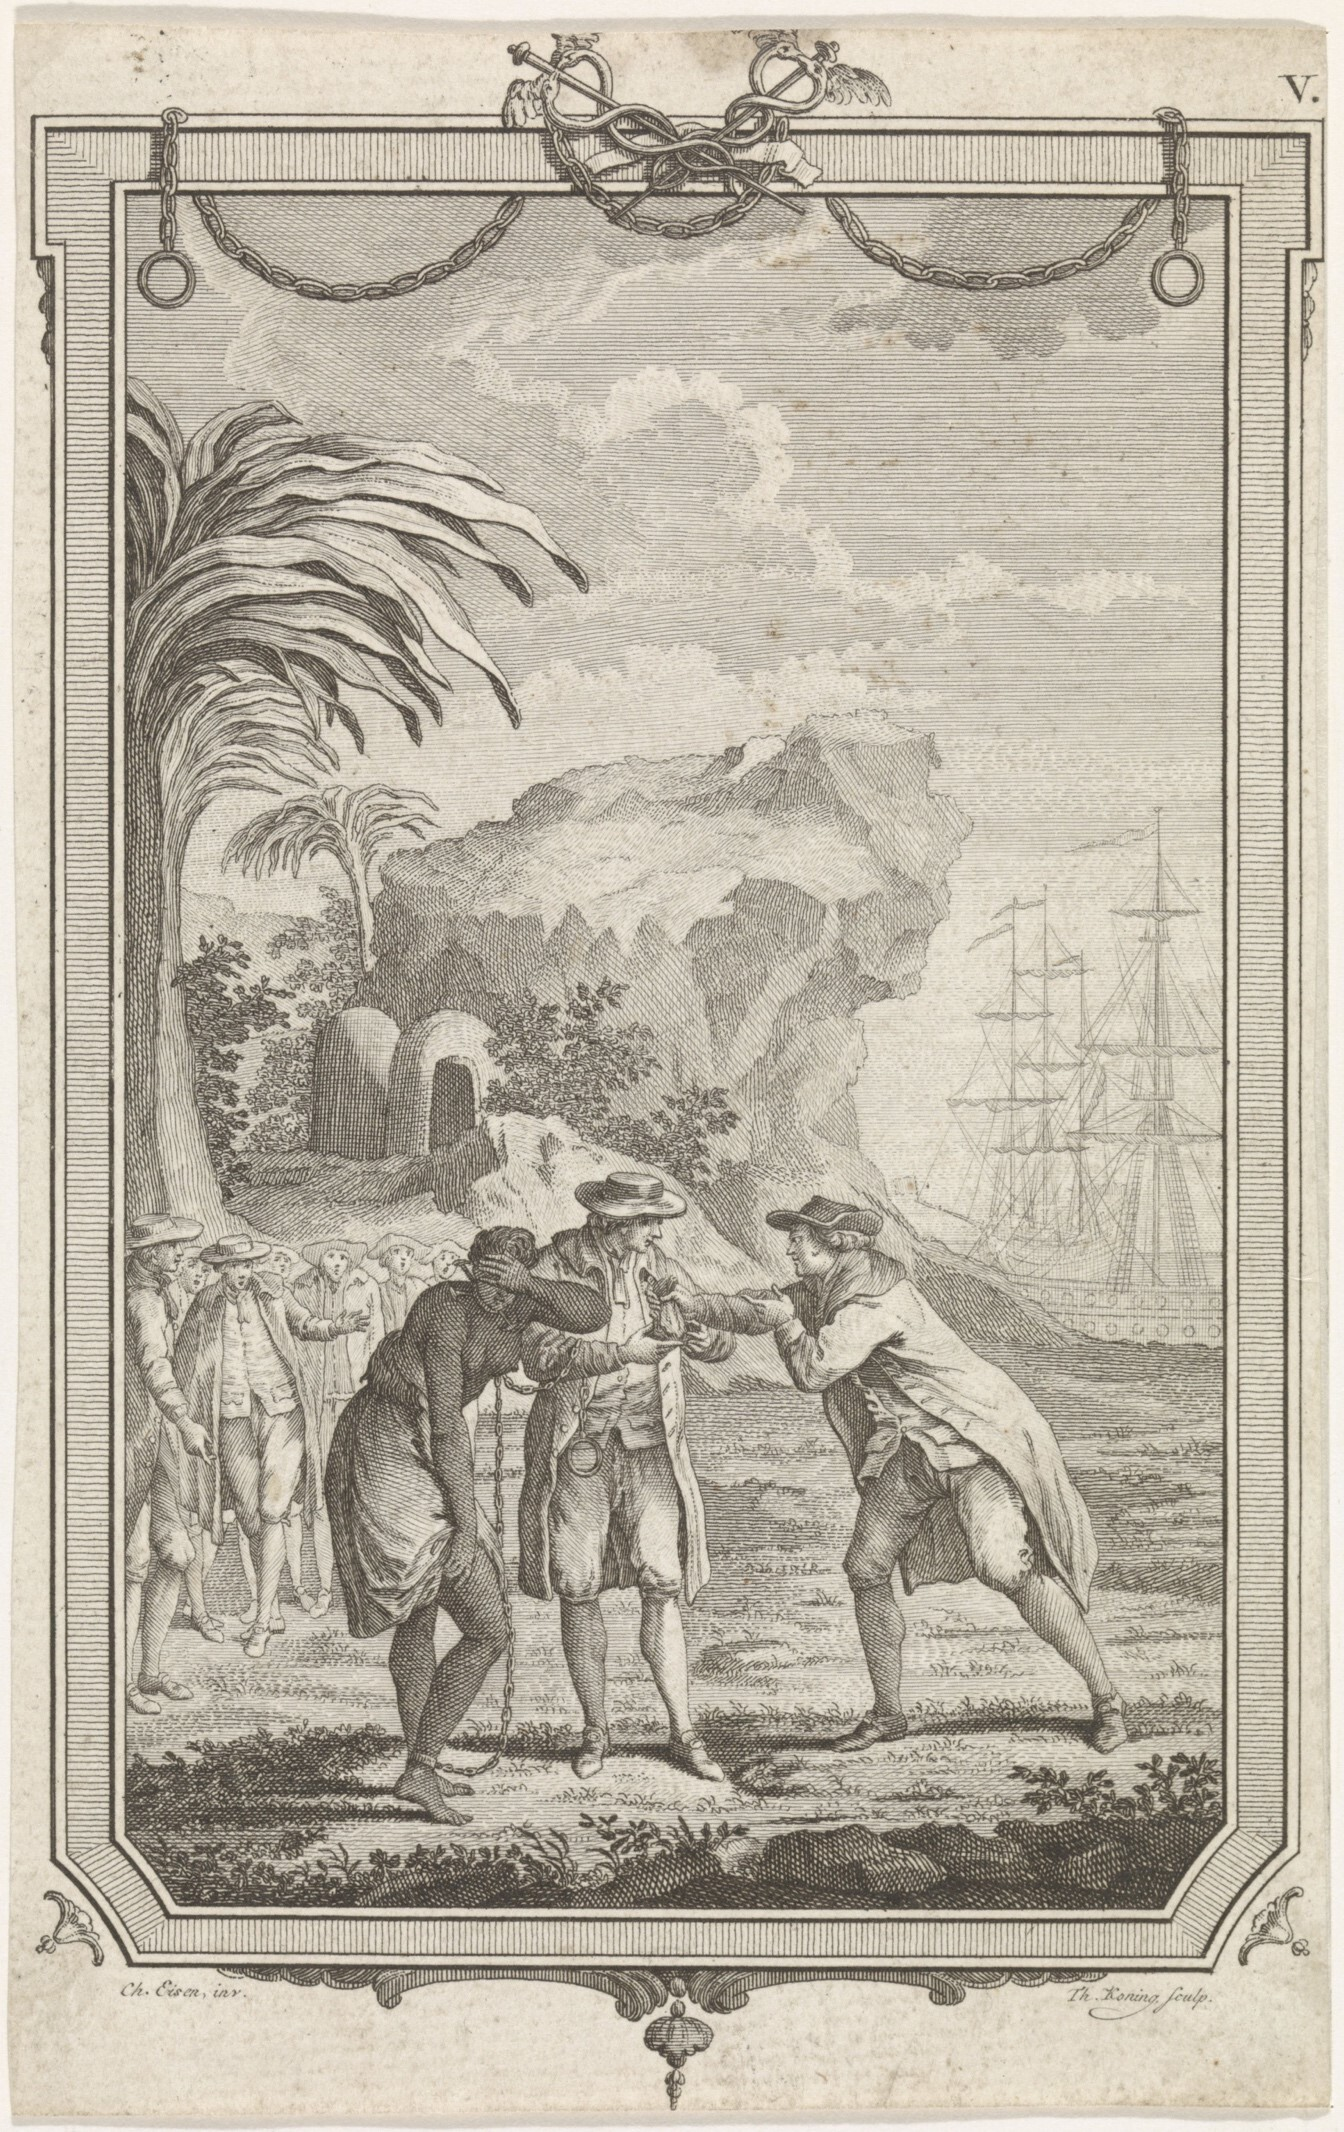 In a rocky landscape with palm trees, a man sells a slave girl to another man. The enslaved black woman is bent over and has put her left hand over her eyes. Masts of sailing ships on the right.